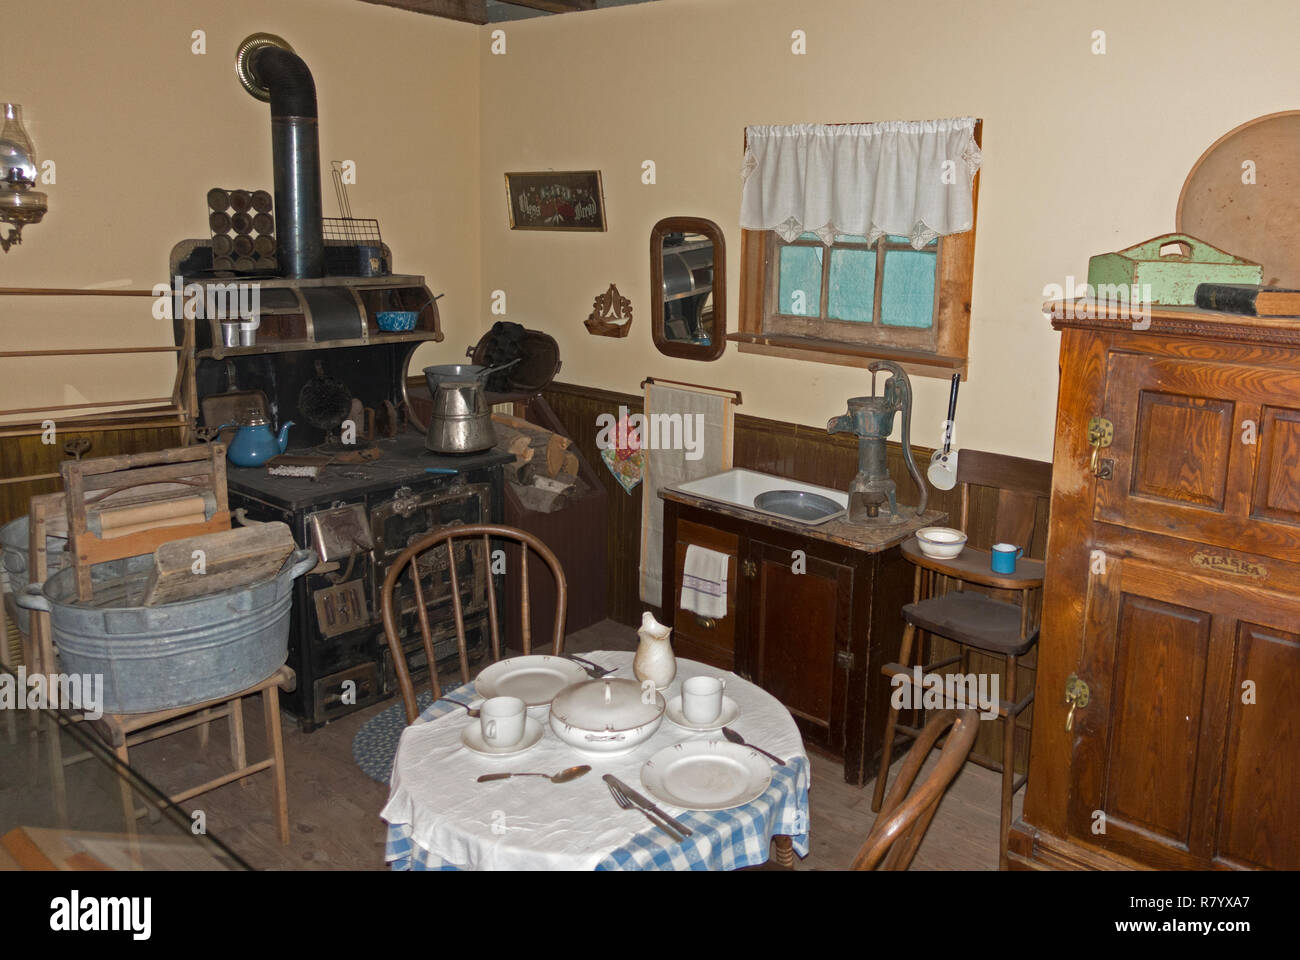 Historical kitchen with wood burning stove, clothes wringer wash tub displayed at Otter Tail County Historical Museum. Fergus Falls Minnesota MN USA - Stock Image